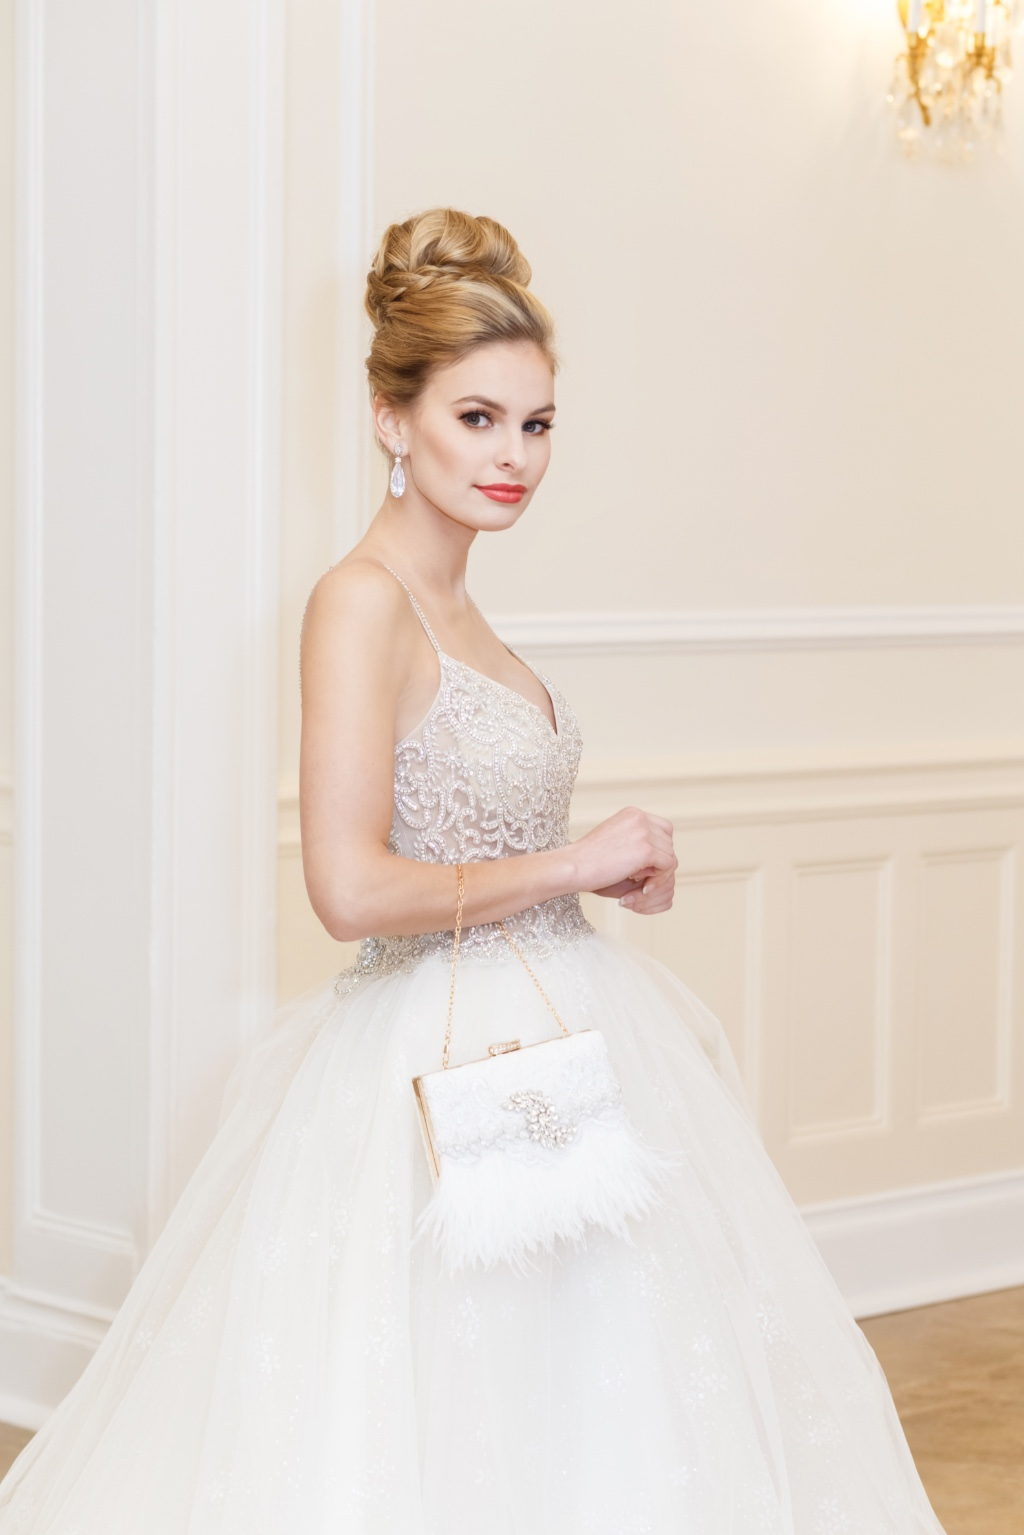 Unique and one of a kind bridal clutches